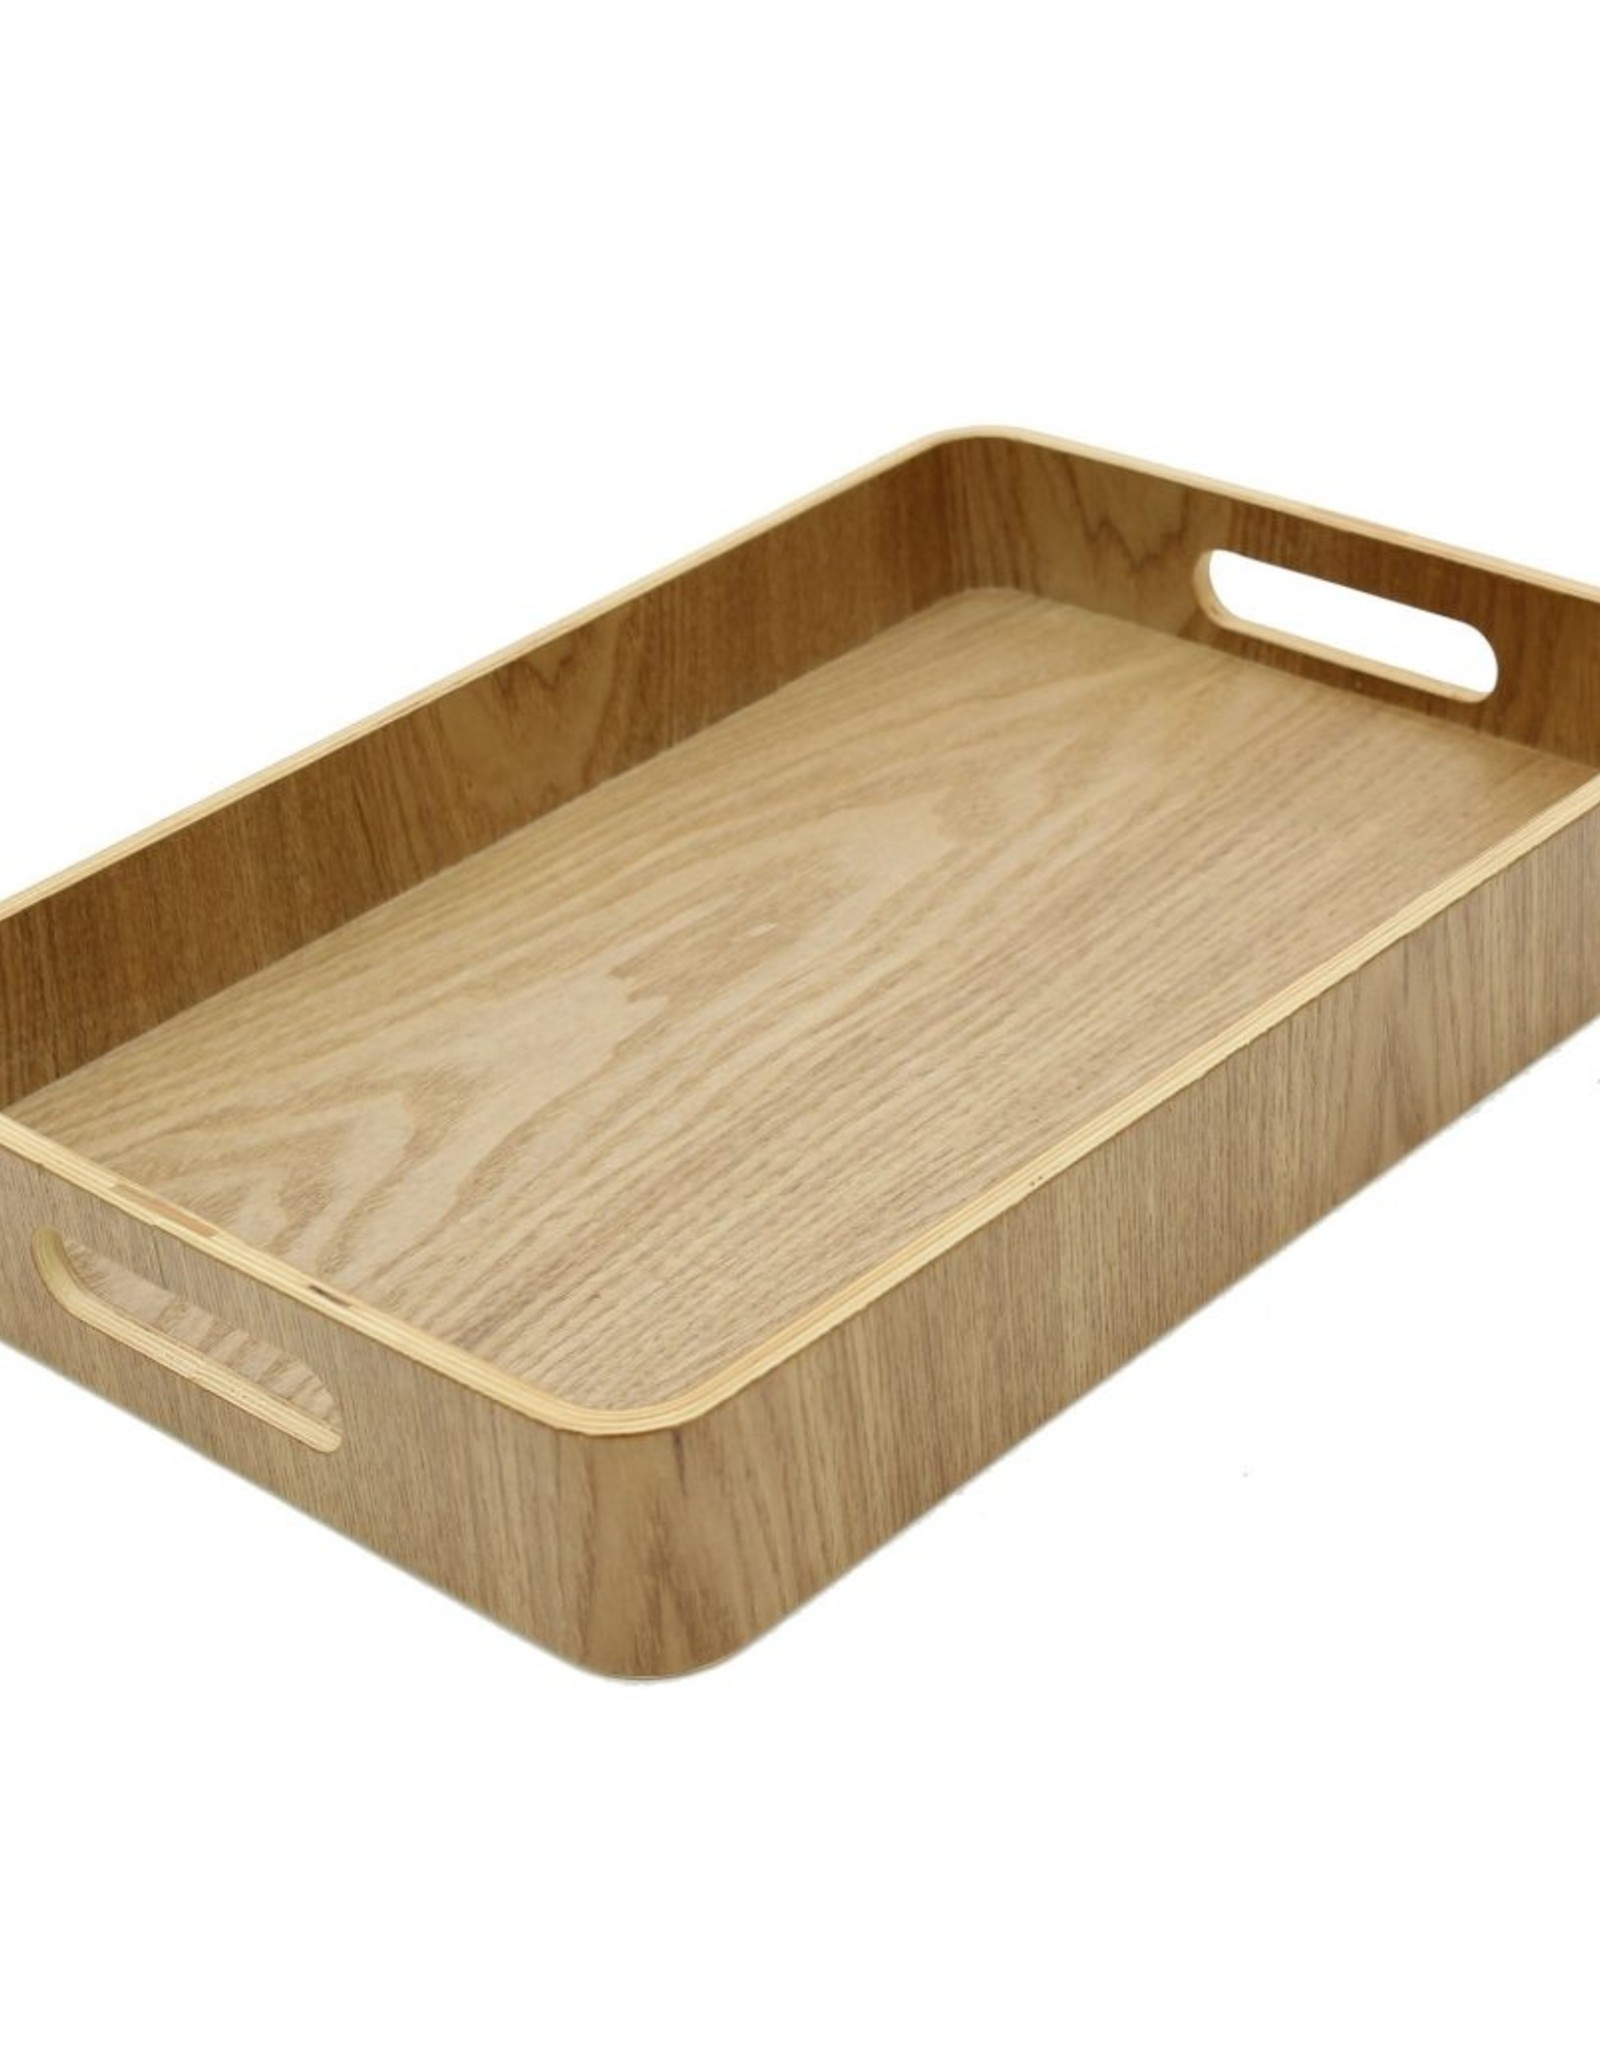 """Cathay Basket Cathay Bentwood Tray 13"""" L 10-2459"""